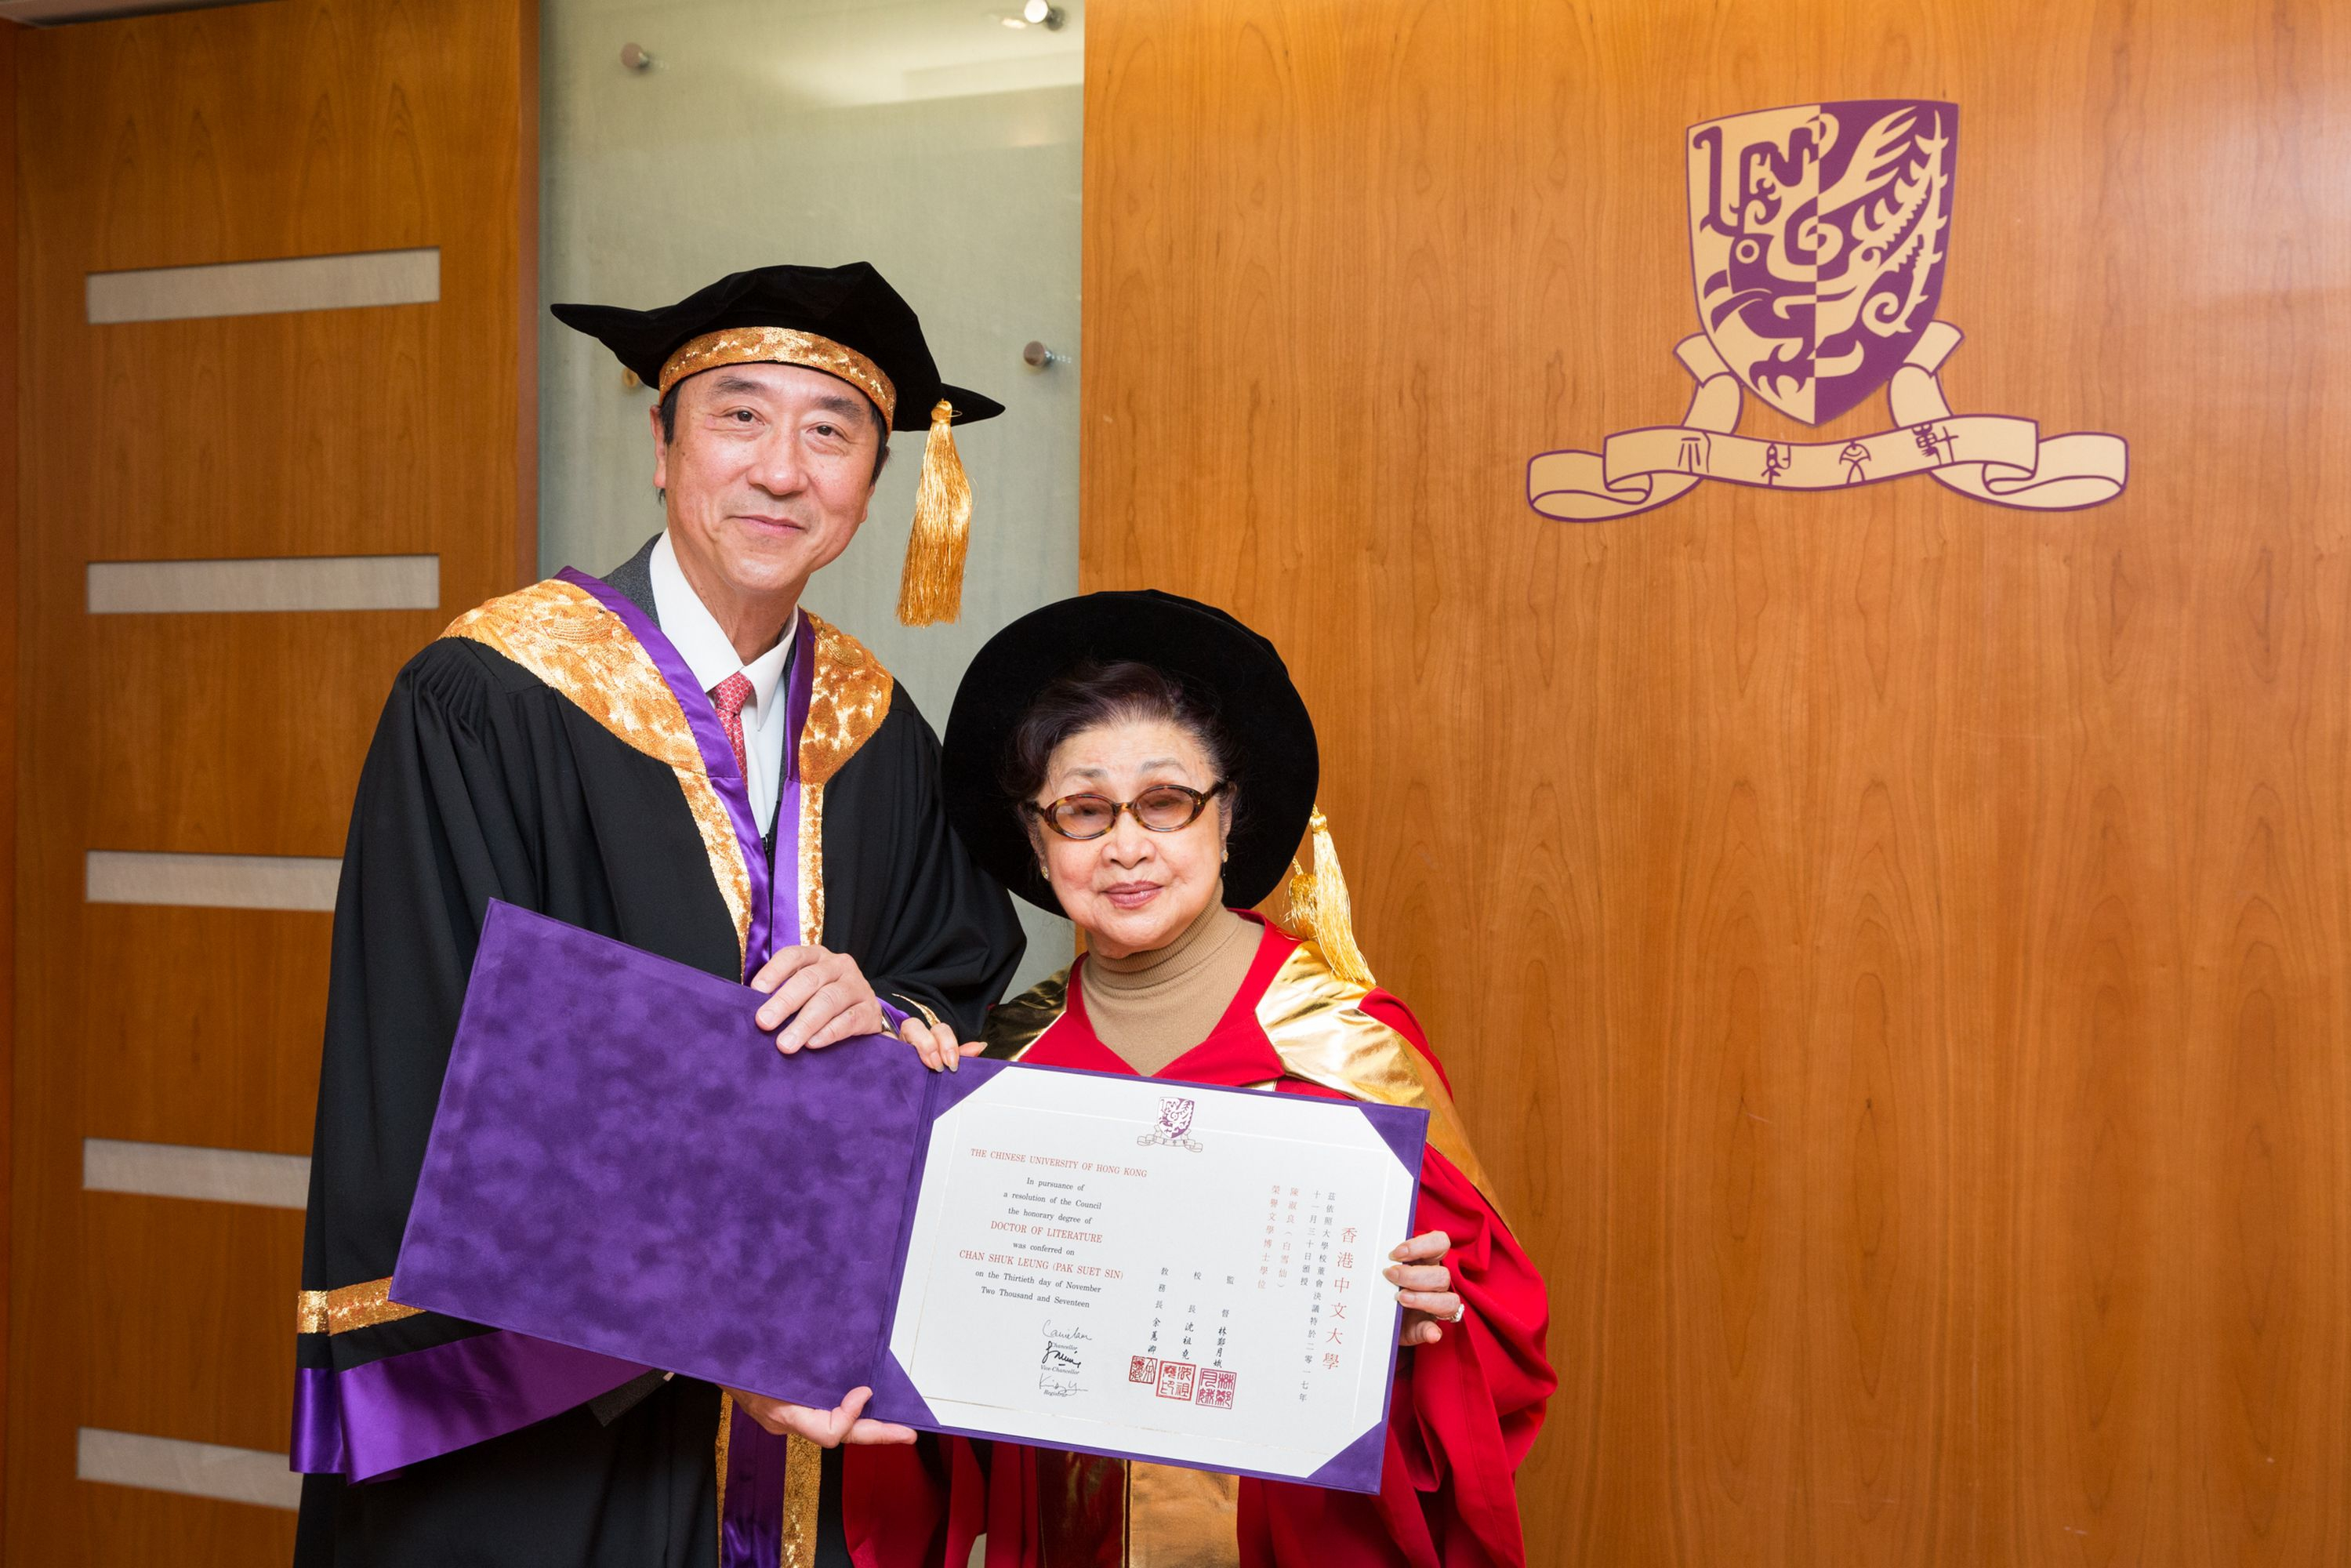 Prof. Joseph J.Y. Sung, Vice-Chancellor and President of CUHK (left), presents the certificate of Honorary Degree of Doctor of Literature to Dr. CHAN Shuk-leung (alias PAK Suet-sin)